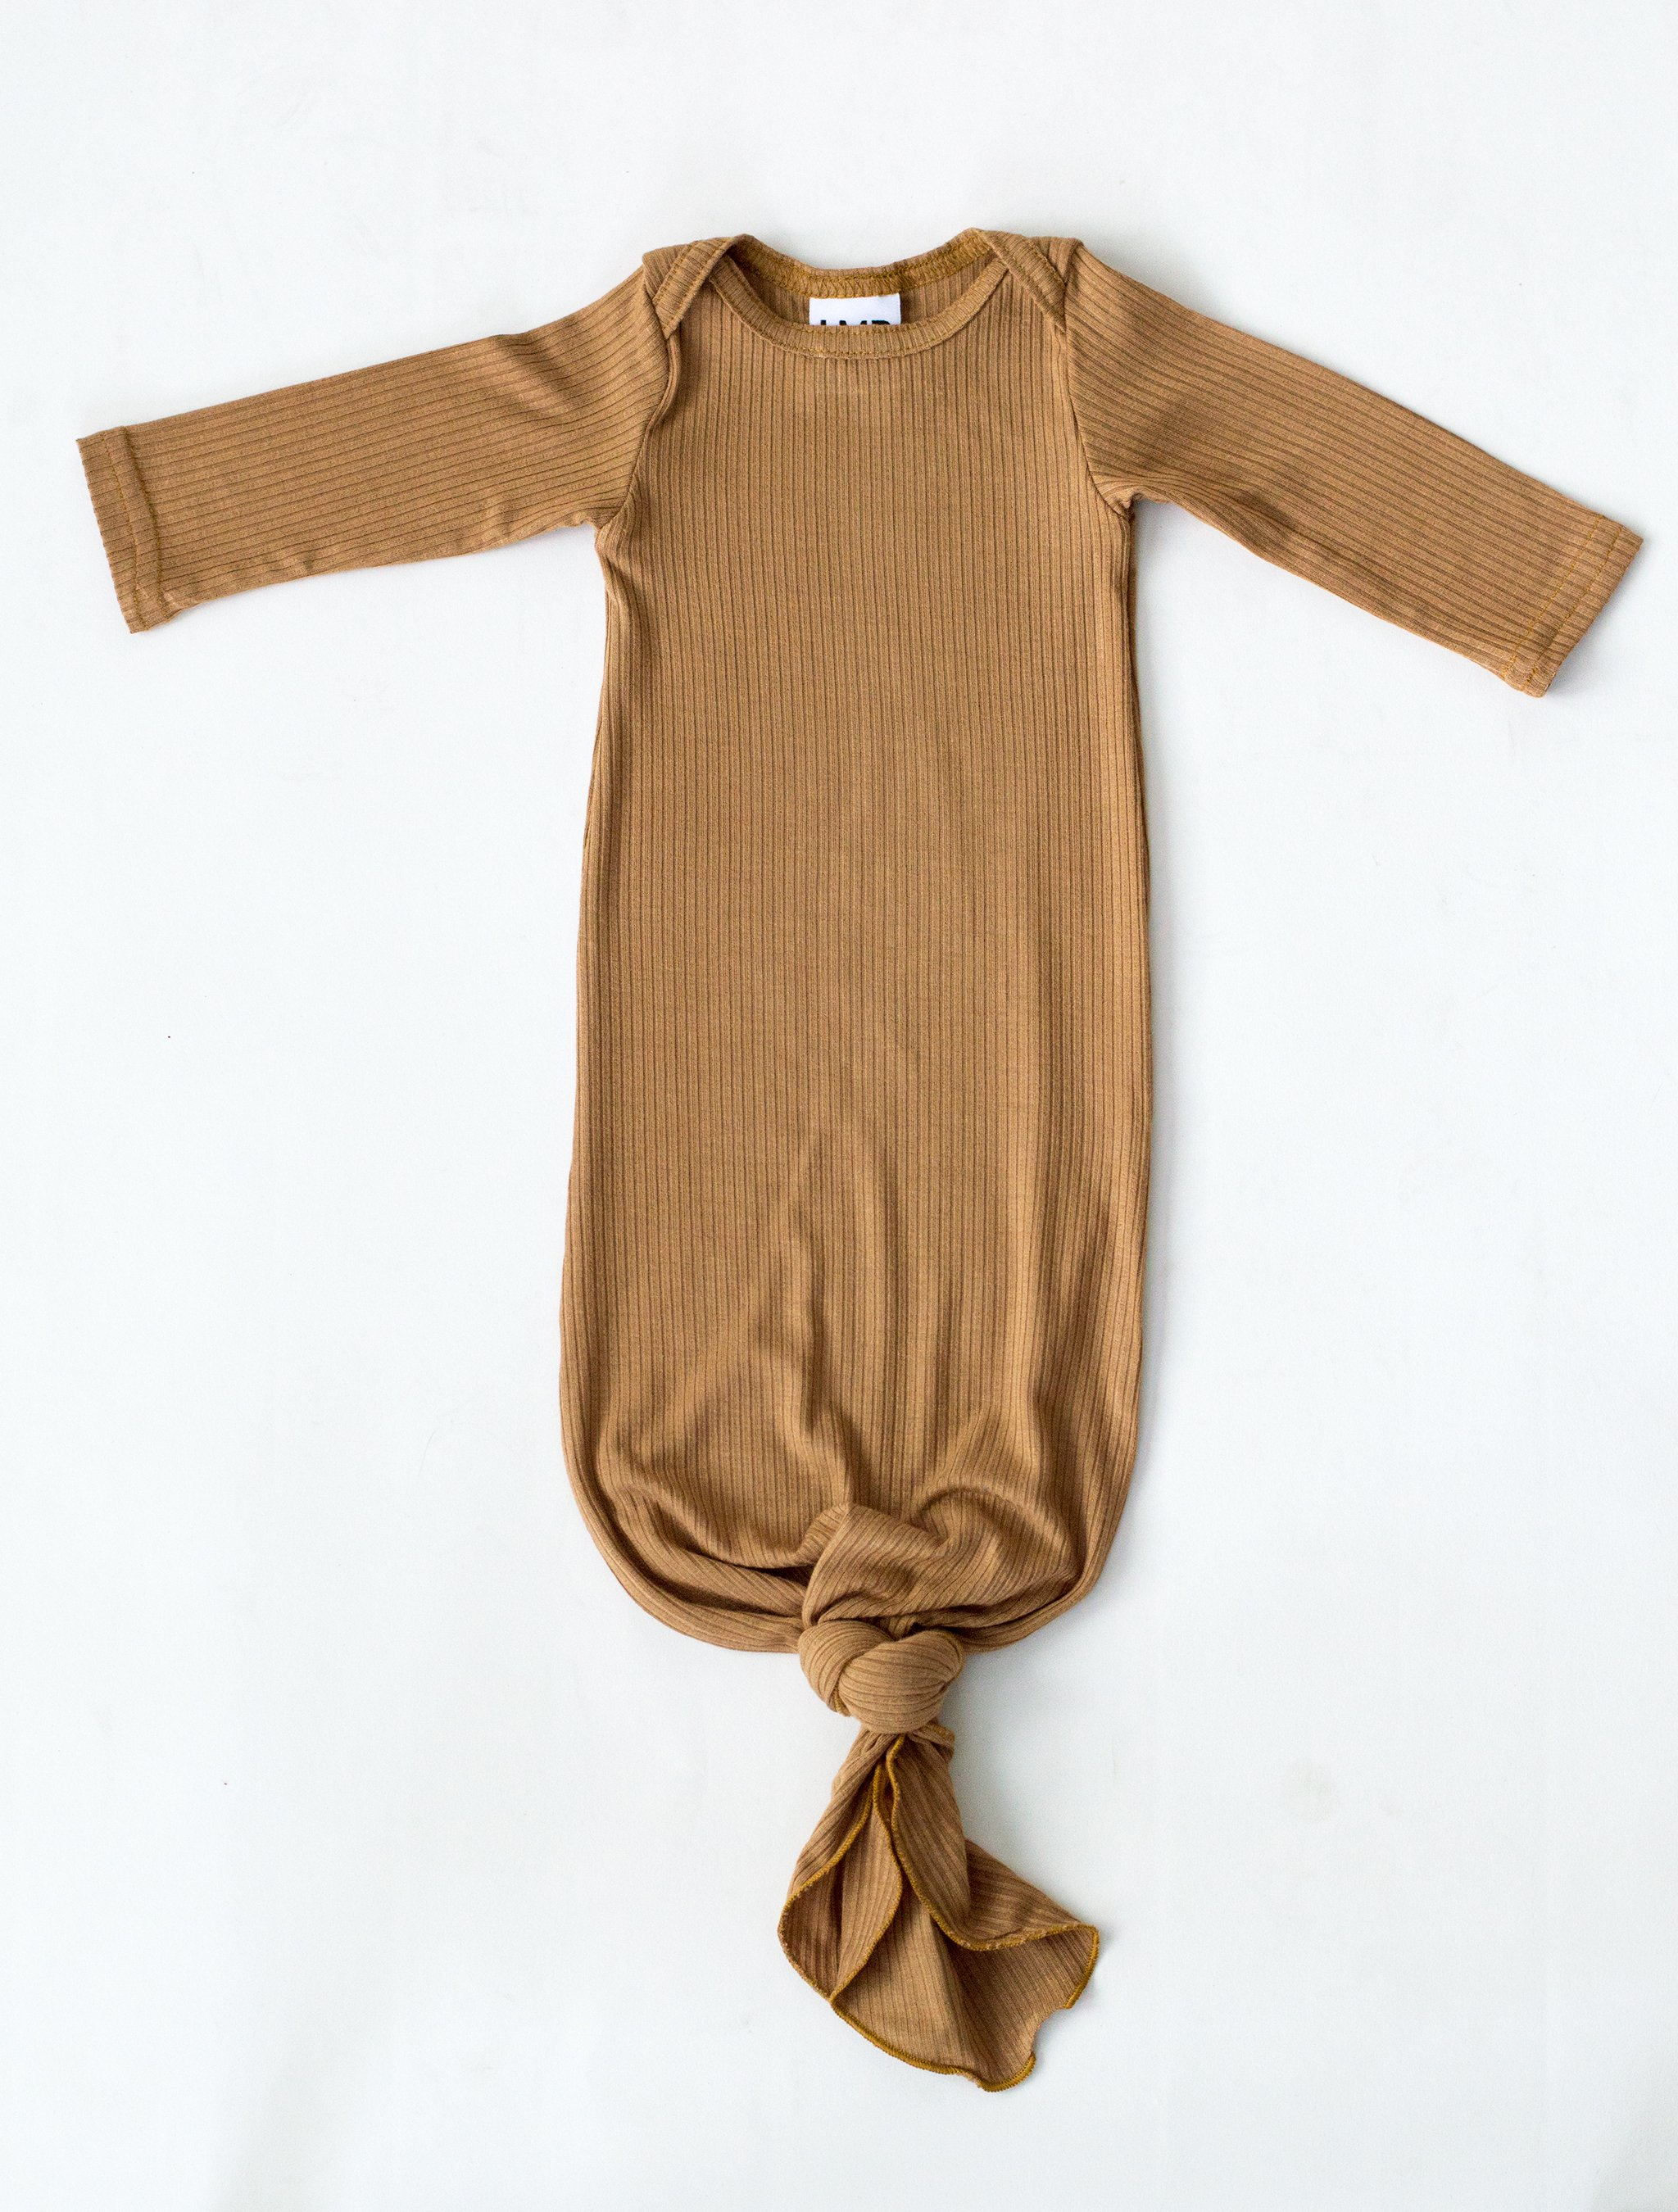 f36c553aa Our Little Nursling™ snuggle knotted baby gowns are the perfect outfit to  bring your newborn home in. A modern take on the classic lap neck onesie,  ...